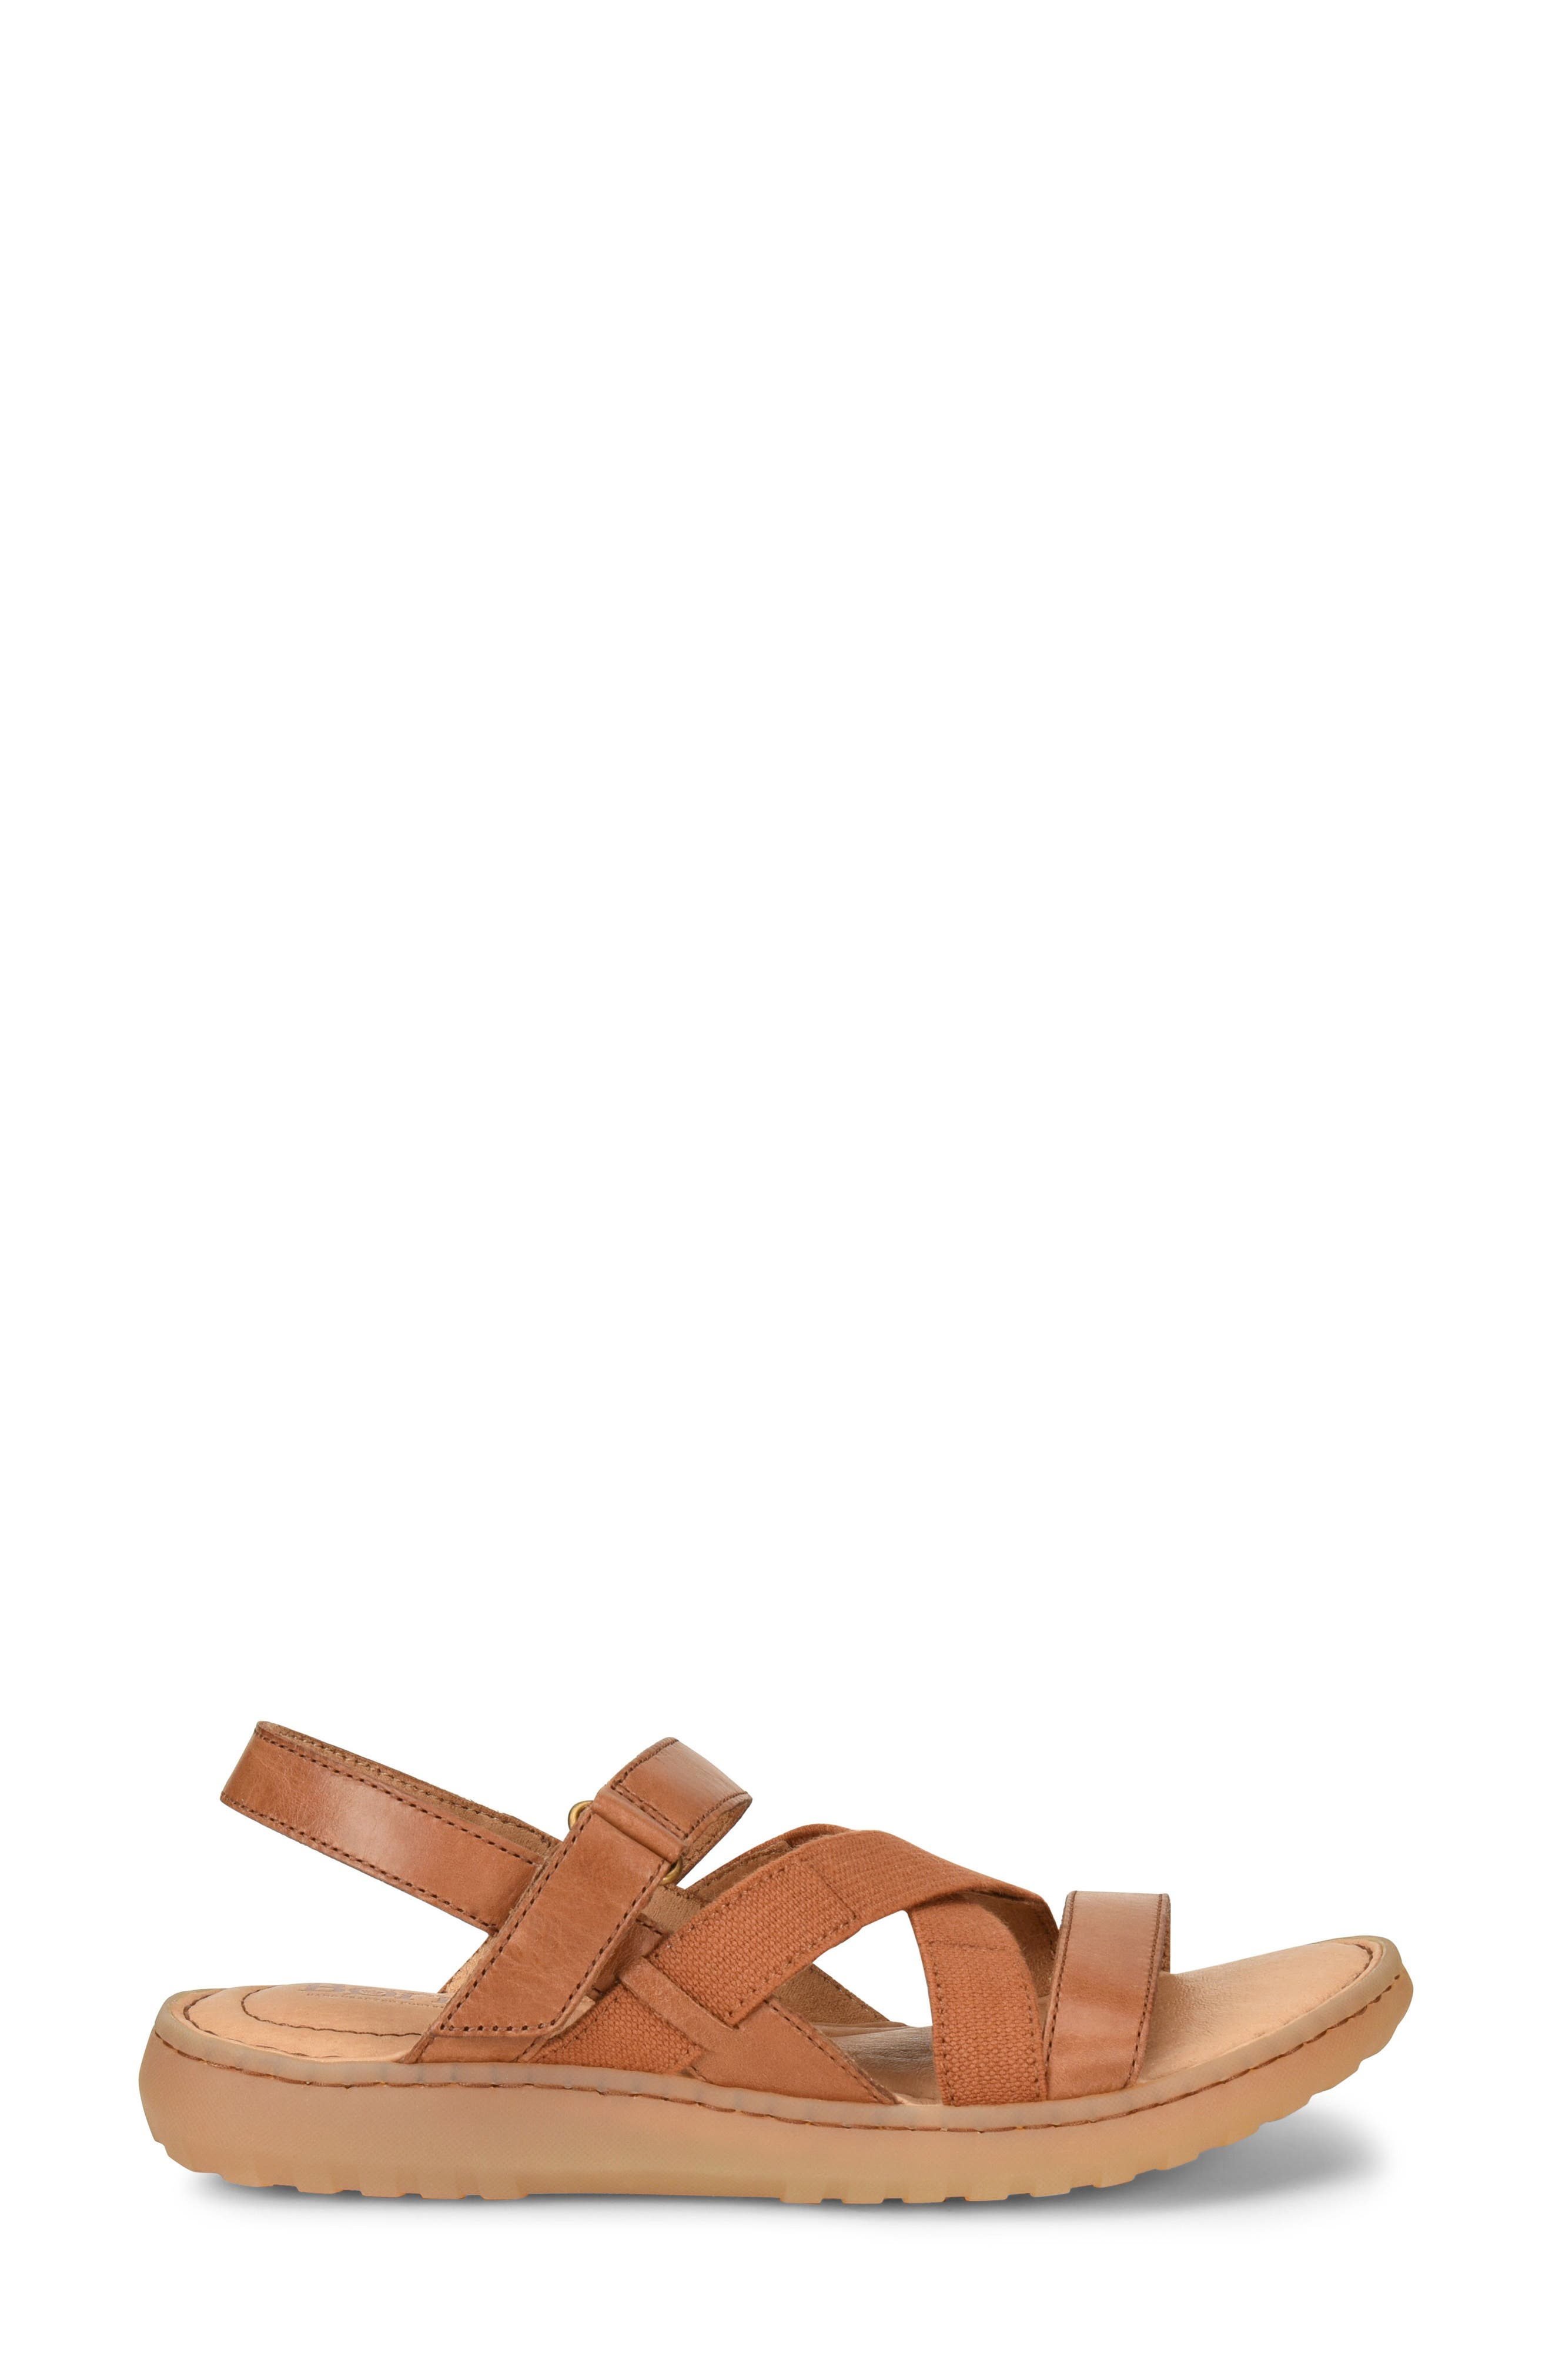 Manta Sandal,                             Alternate thumbnail 3, color,                             Brown Leather